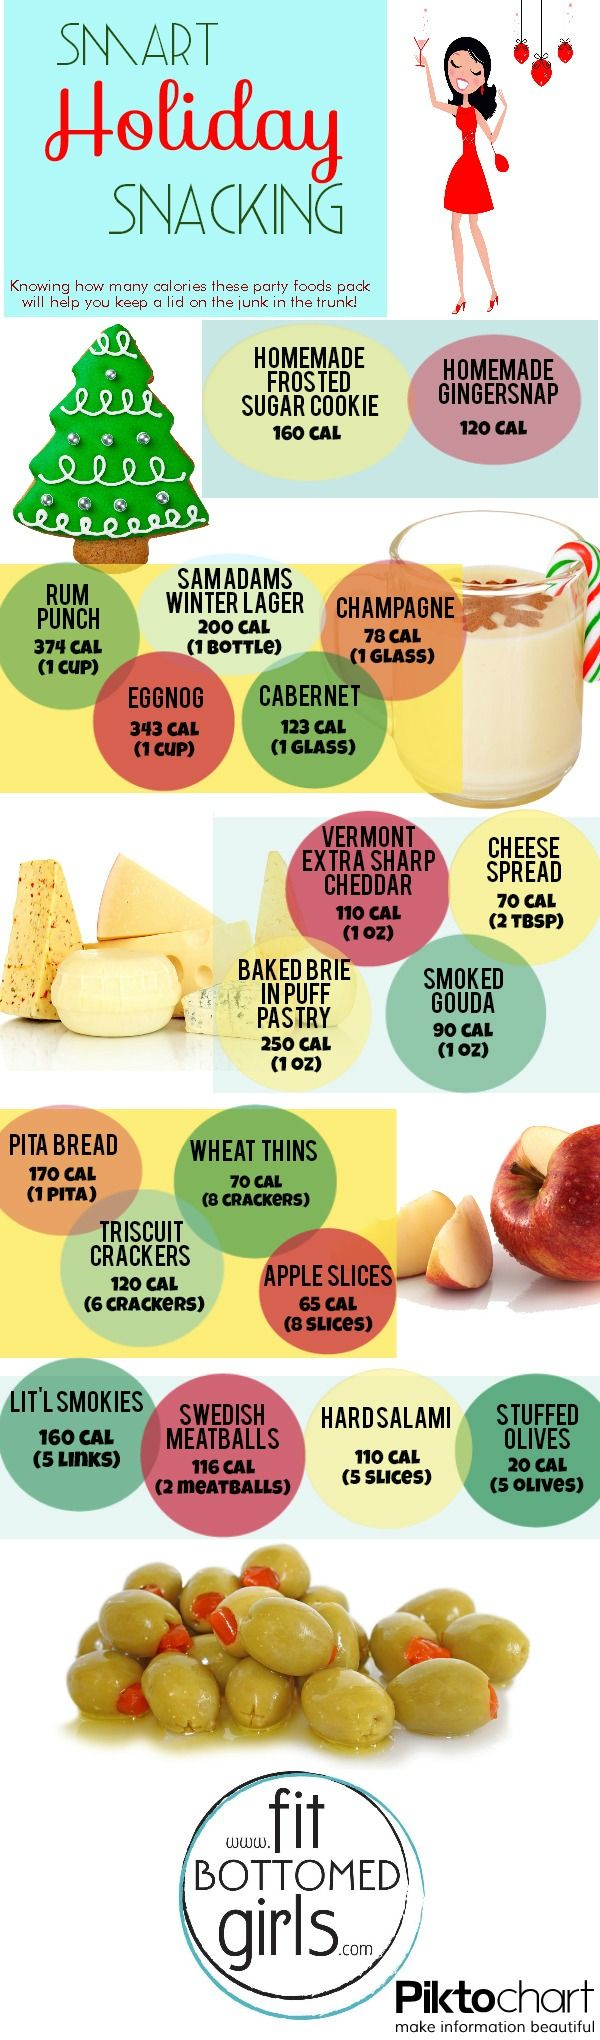 Infographic Your Cheatsheet to Healthier Holiday Snacking